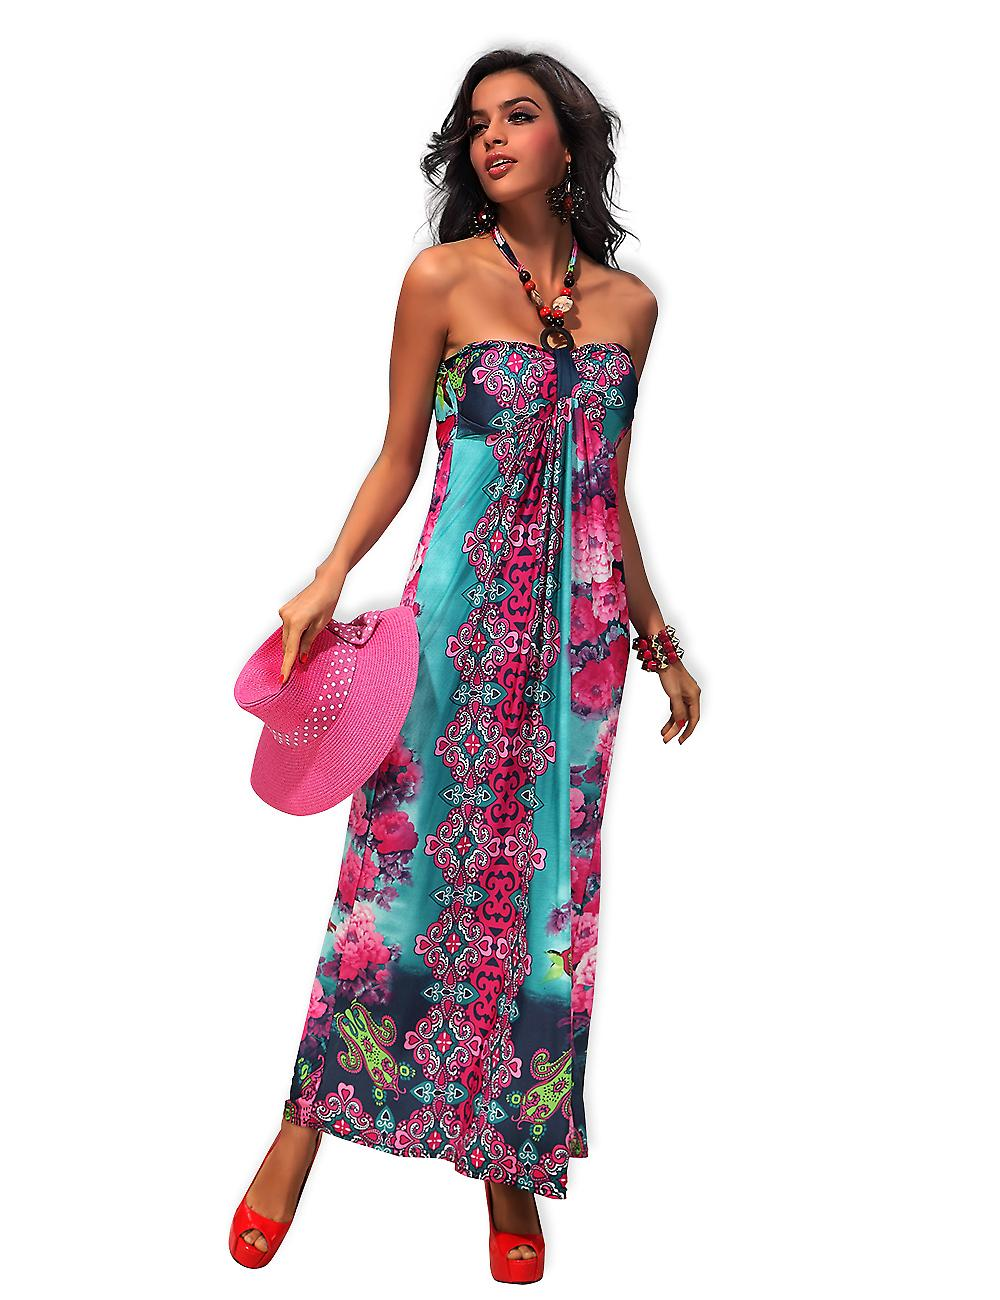 Waooh - Fashion - Dress Sleeveless liberty motif